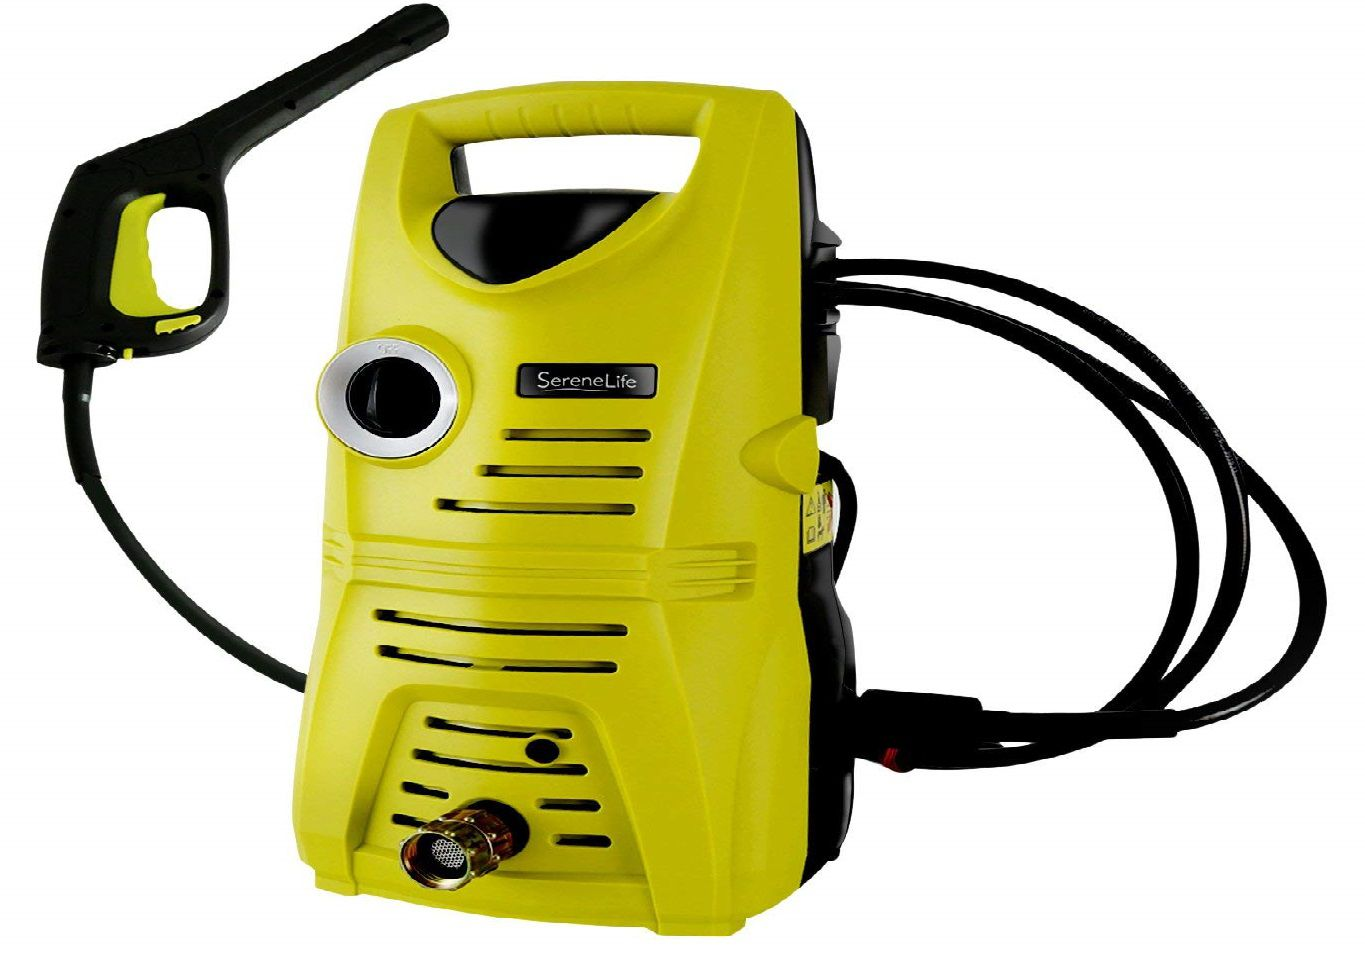 SereneLife Electric Power Pressure Washer Review